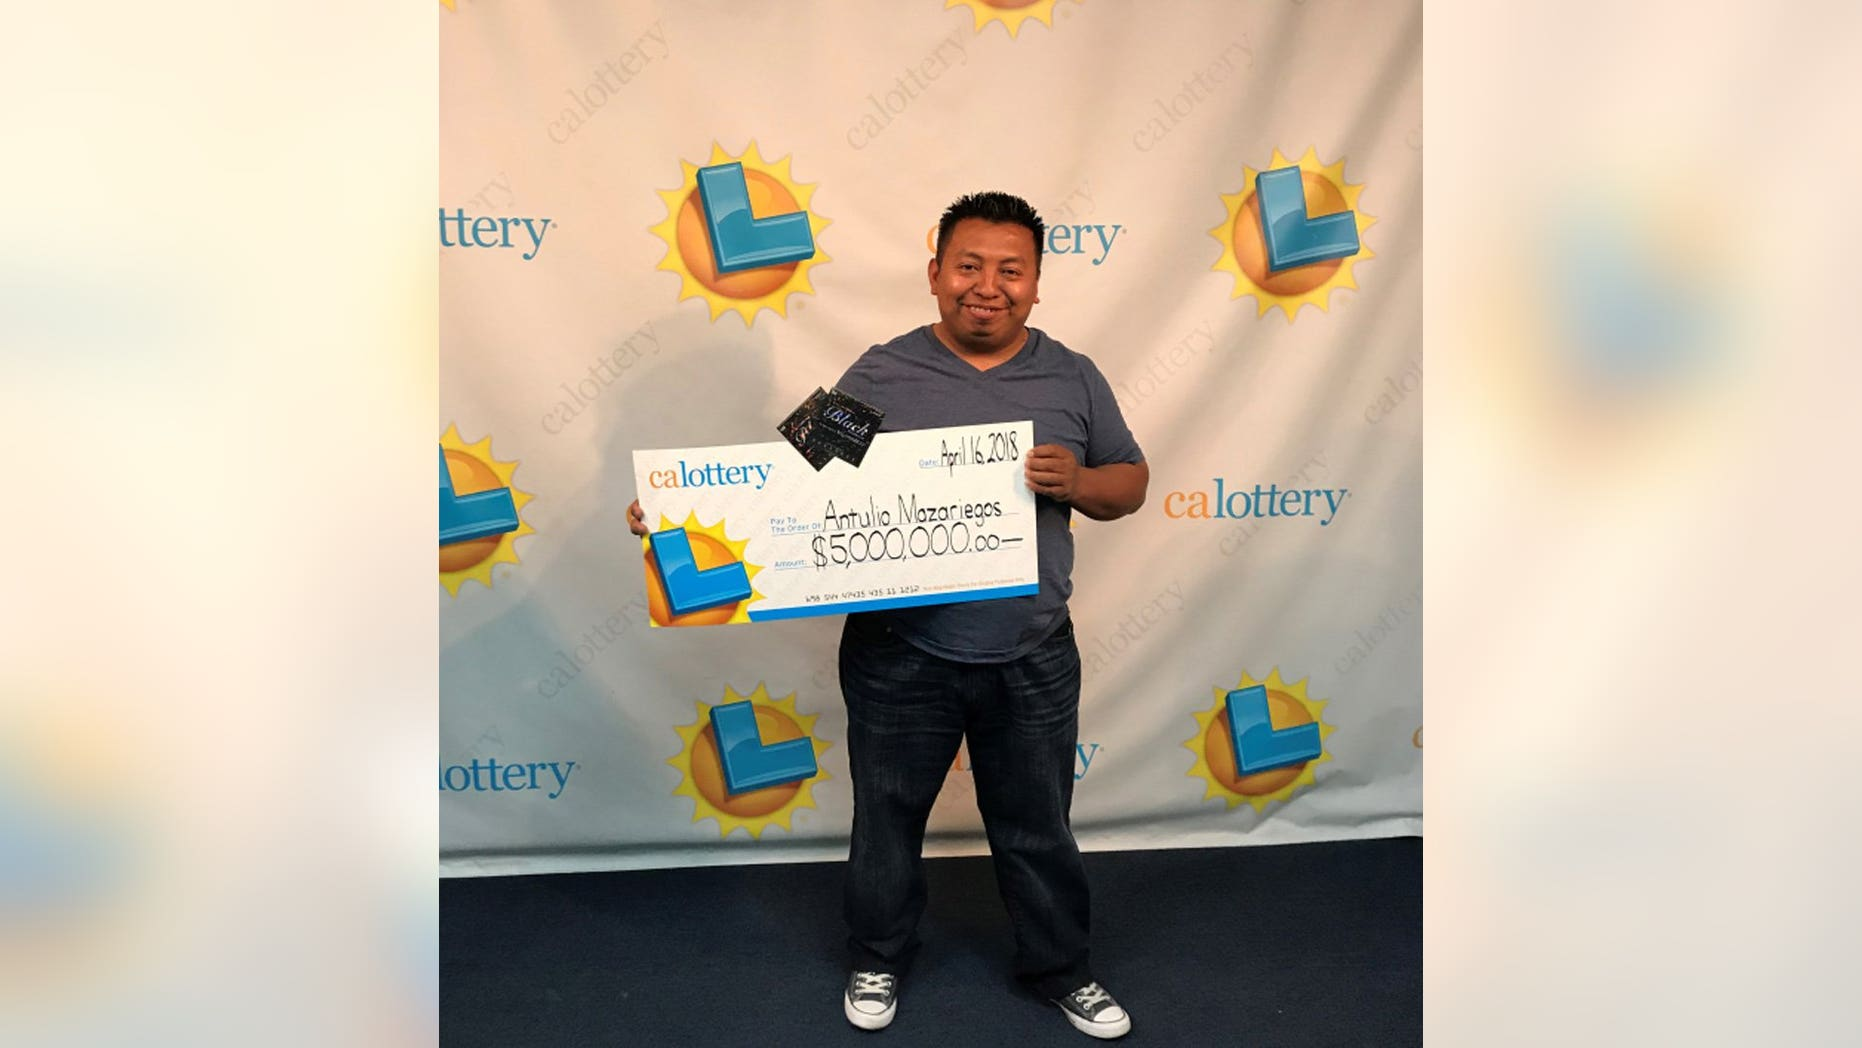 Antulio Mazariegos won four lottery prizes, including one worth $5 million, within six months.